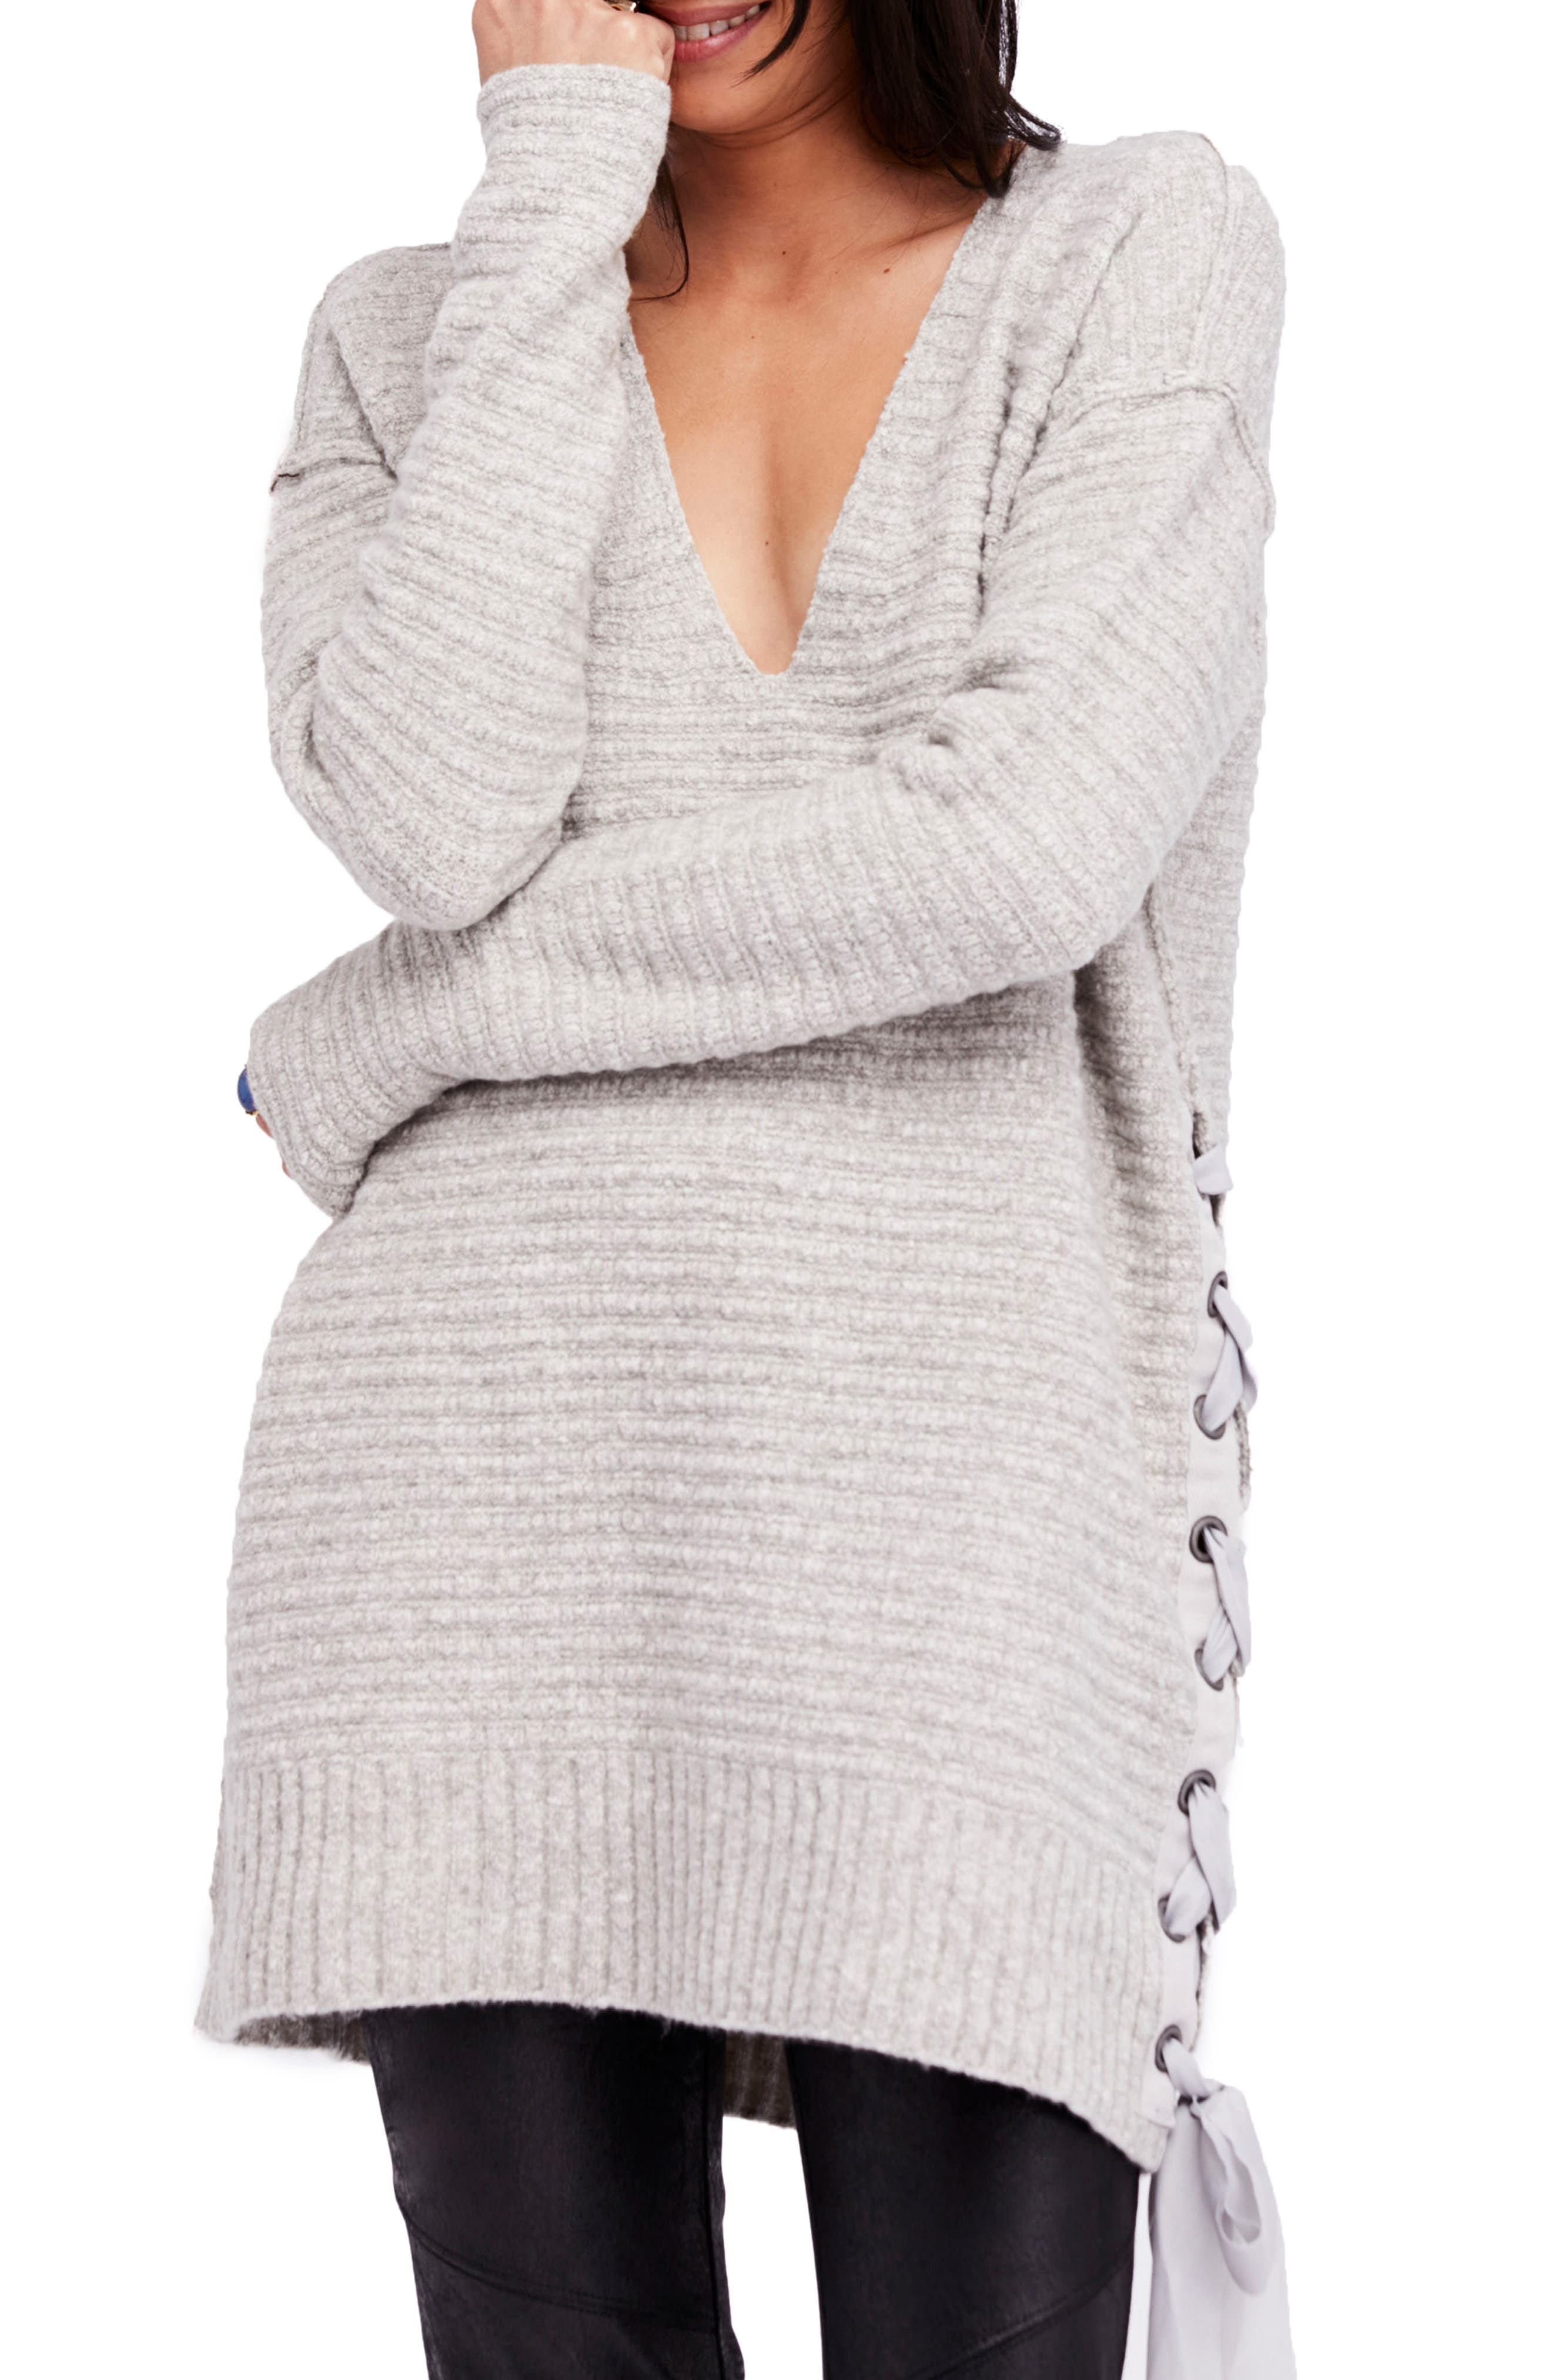 Heart It Laces Sweater,                             Main thumbnail 1, color,                             Grey